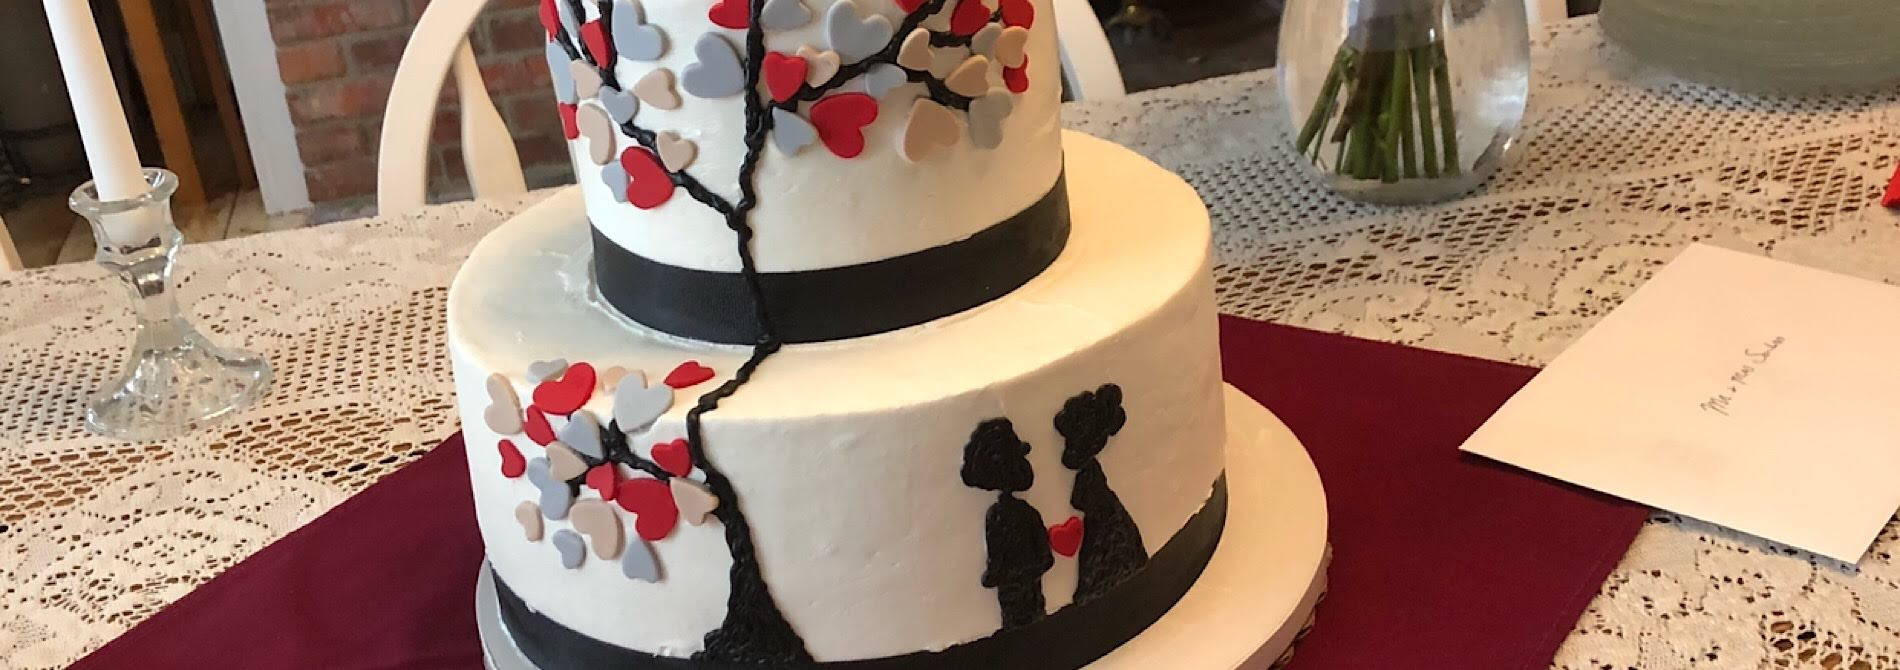 wedding cake with silhouette of boy and girl amidst multi-color heart shaped leaves